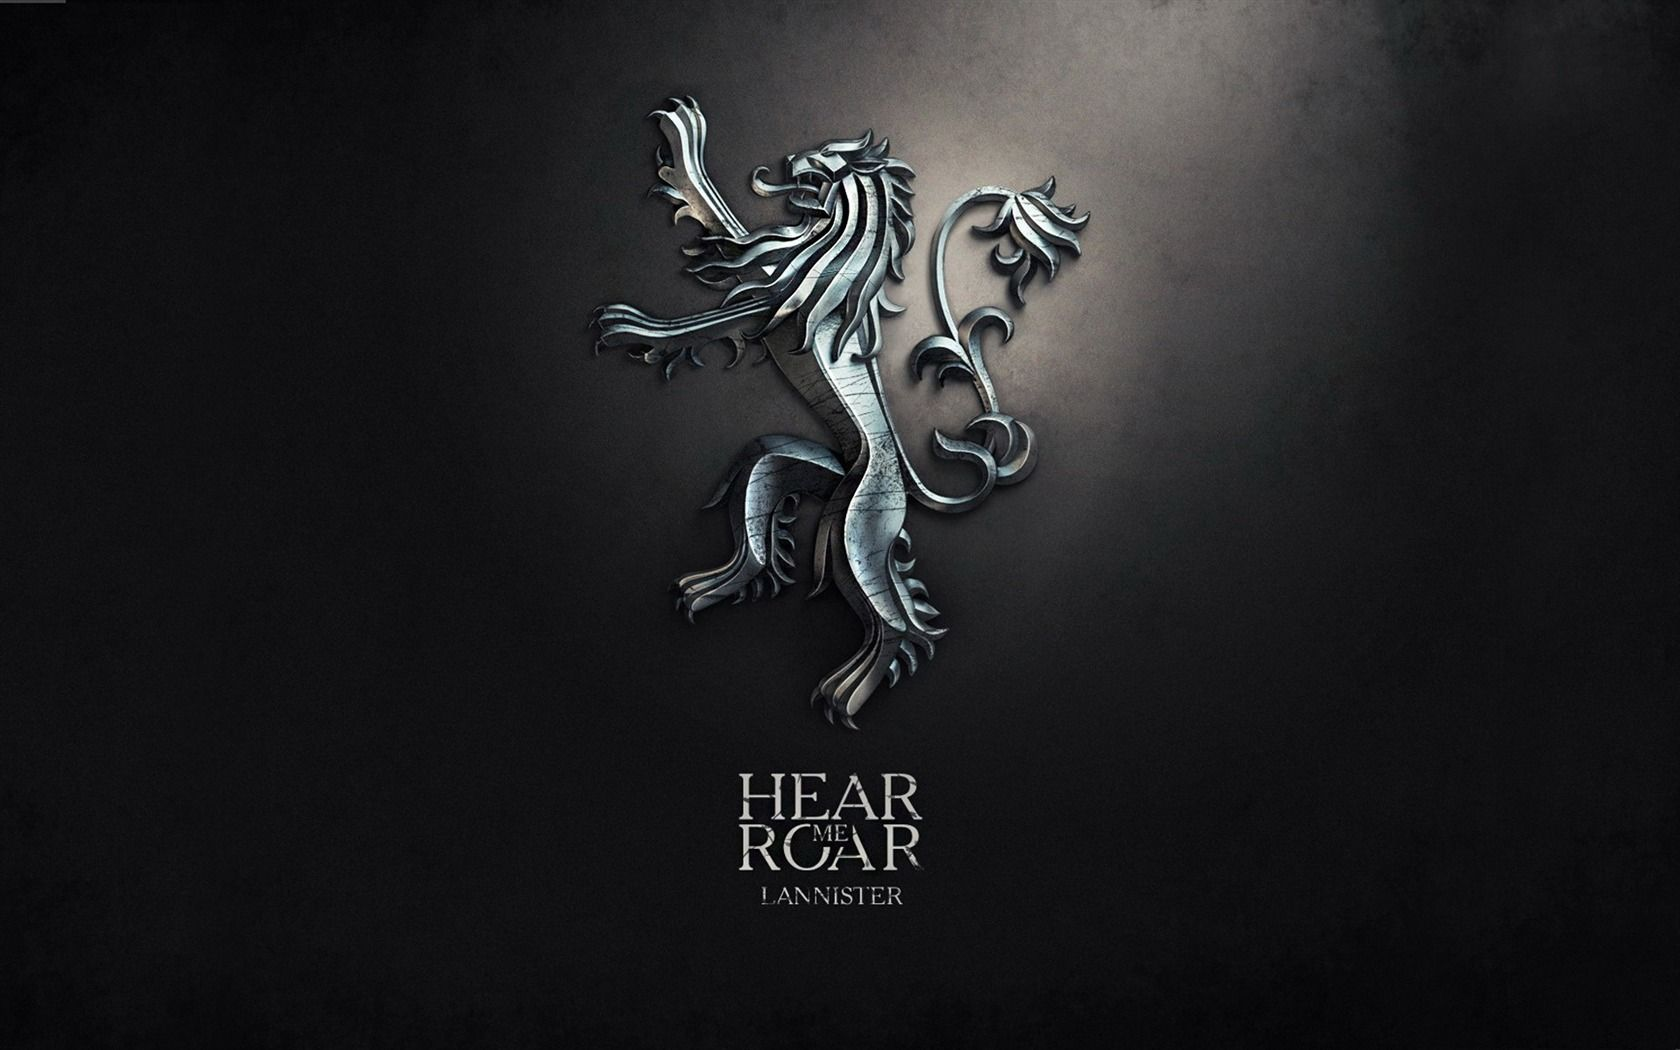 Game Of Thrones 12380 1680x1050 Px Hdwallsource Game Of Thrones Fans Lannister Sigil Game Of Thrones